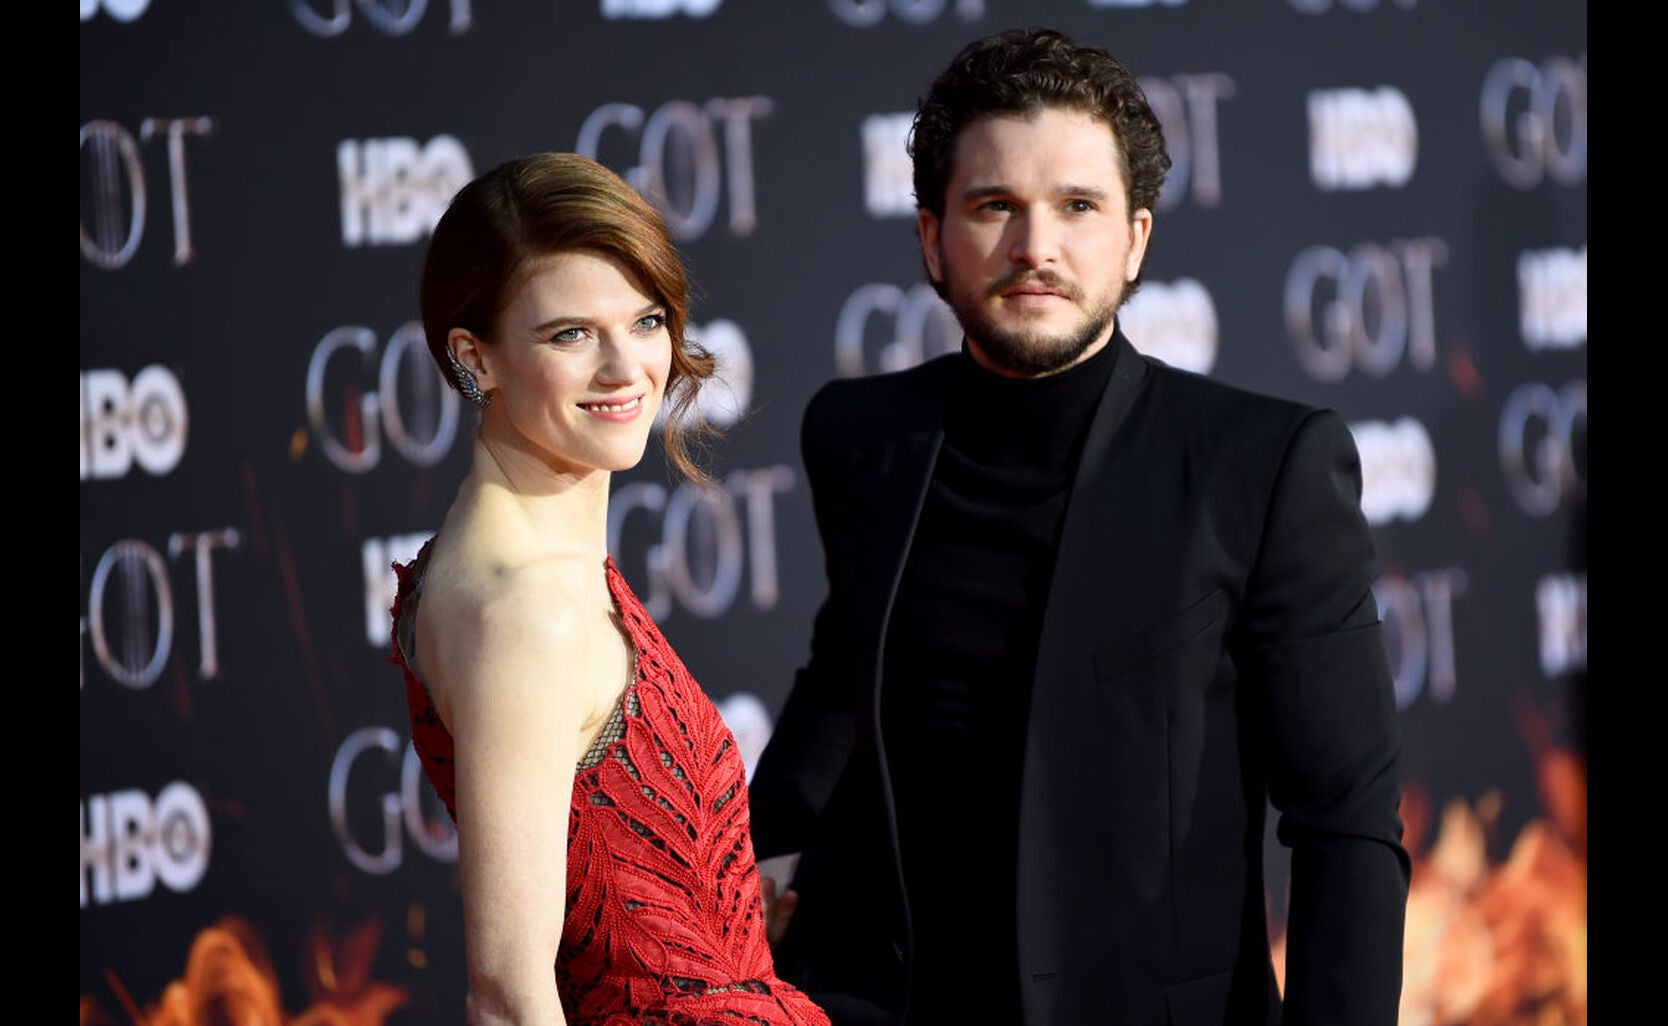 Rose Leslie and Kit Harington at the premiere of Game of Thrones